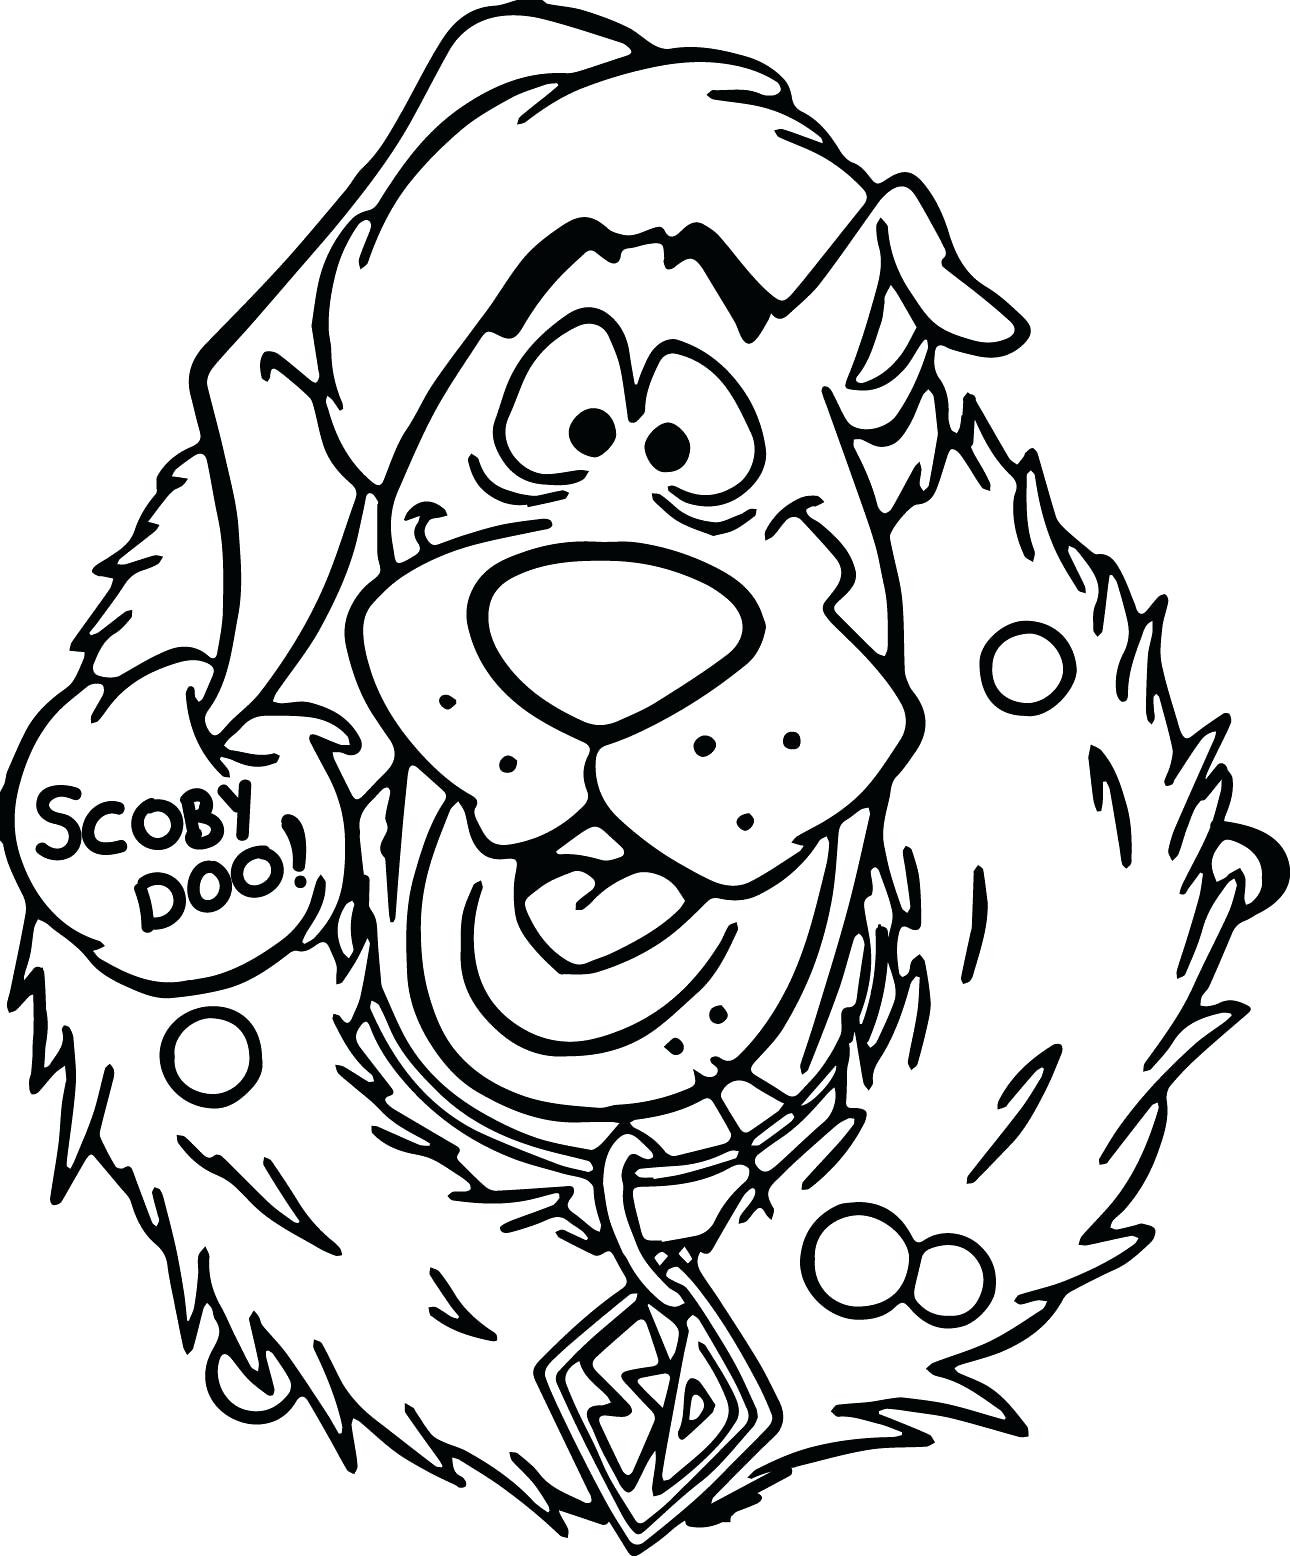 Scooby Doo Face Drawing At Getdrawings